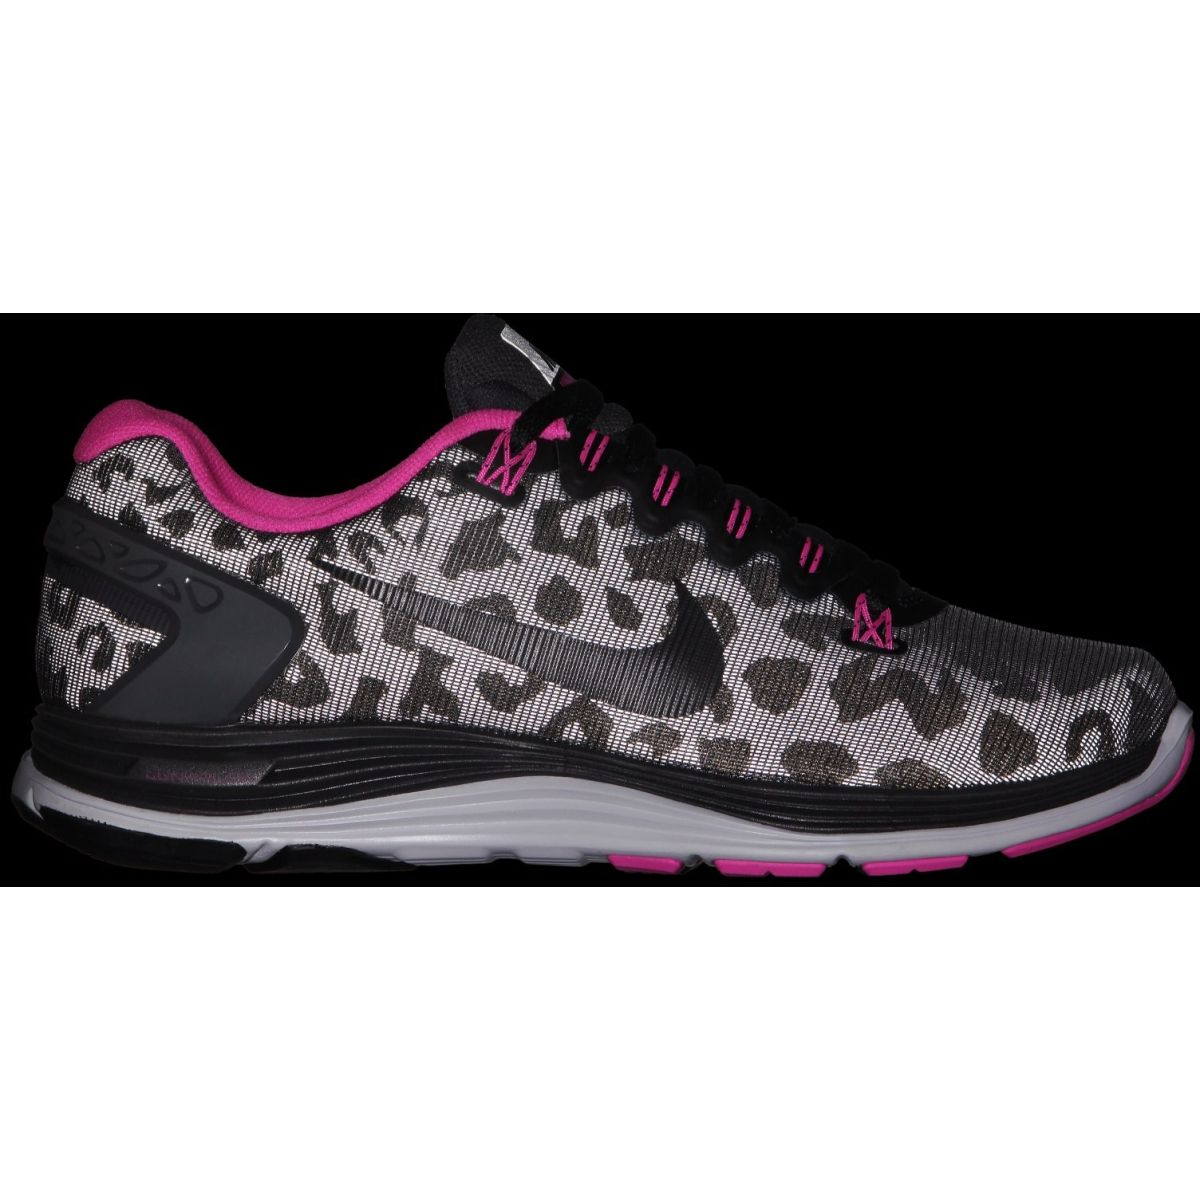 Womens running shoes, Nike shoes outlet